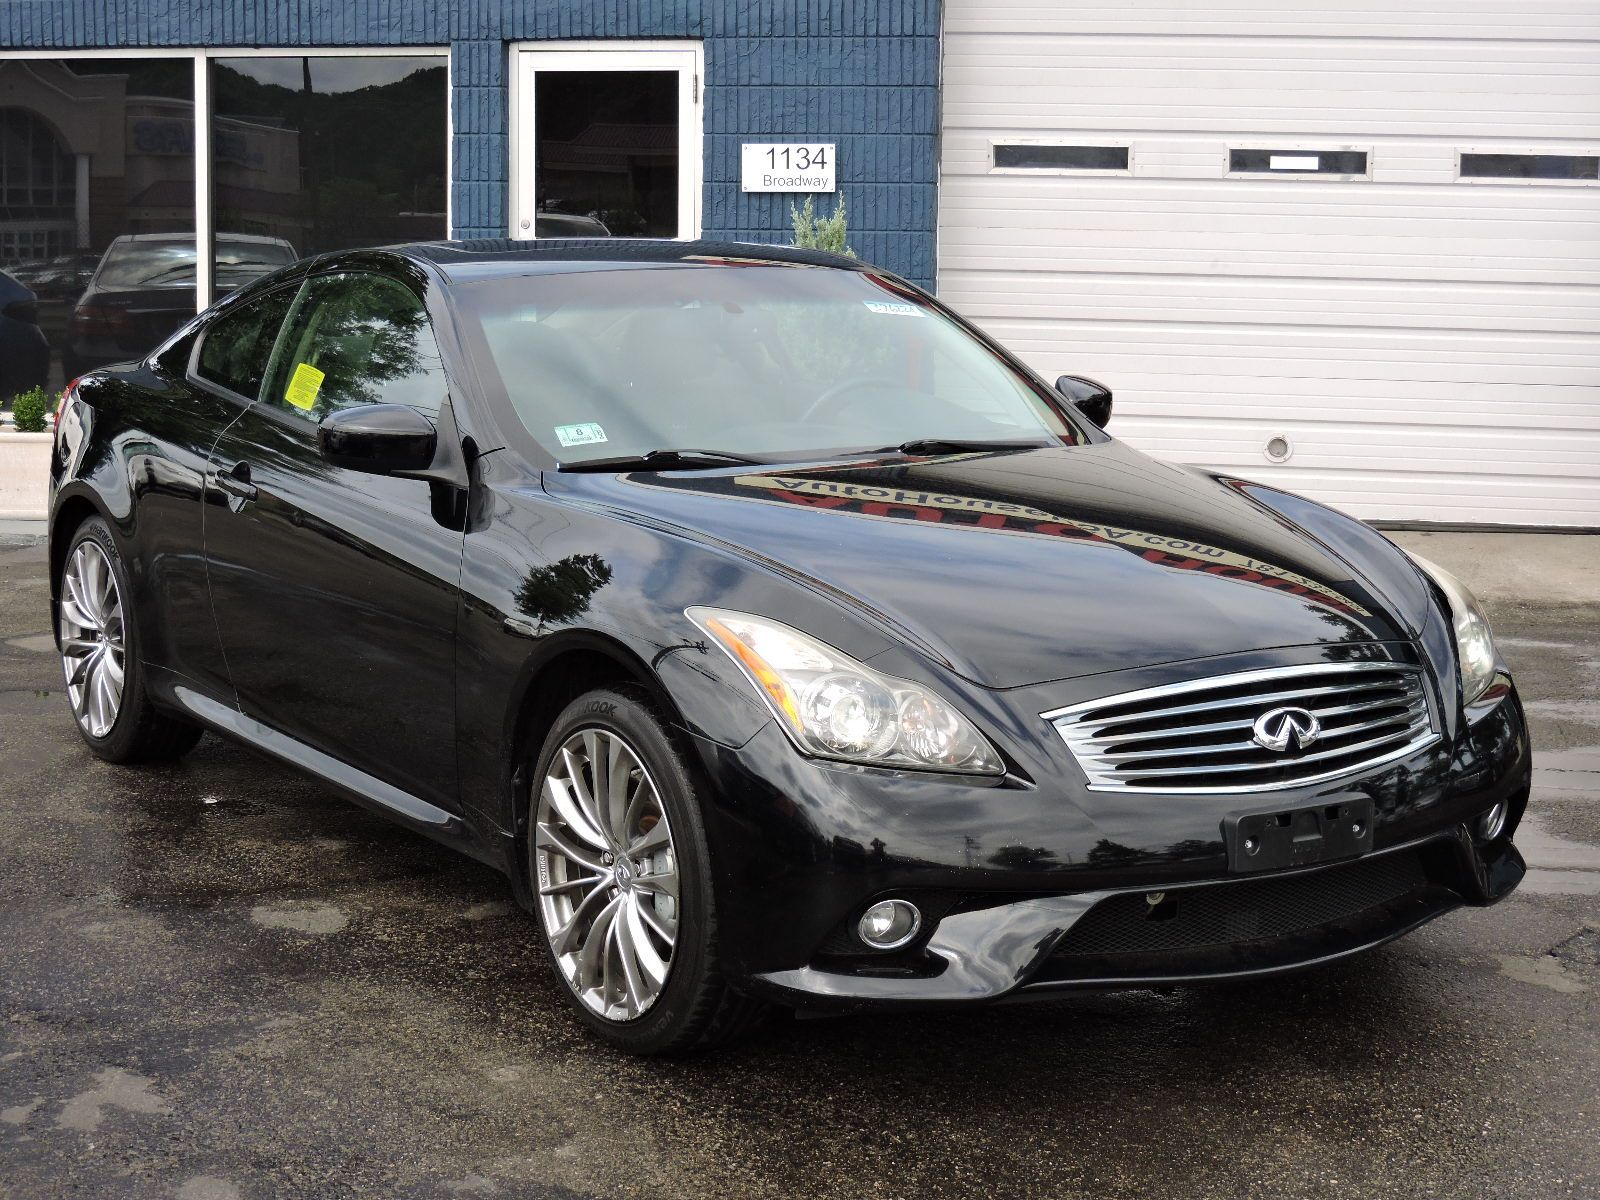 used 2011 infiniti g37x s coupe x s at auto house usa saugus. Black Bedroom Furniture Sets. Home Design Ideas